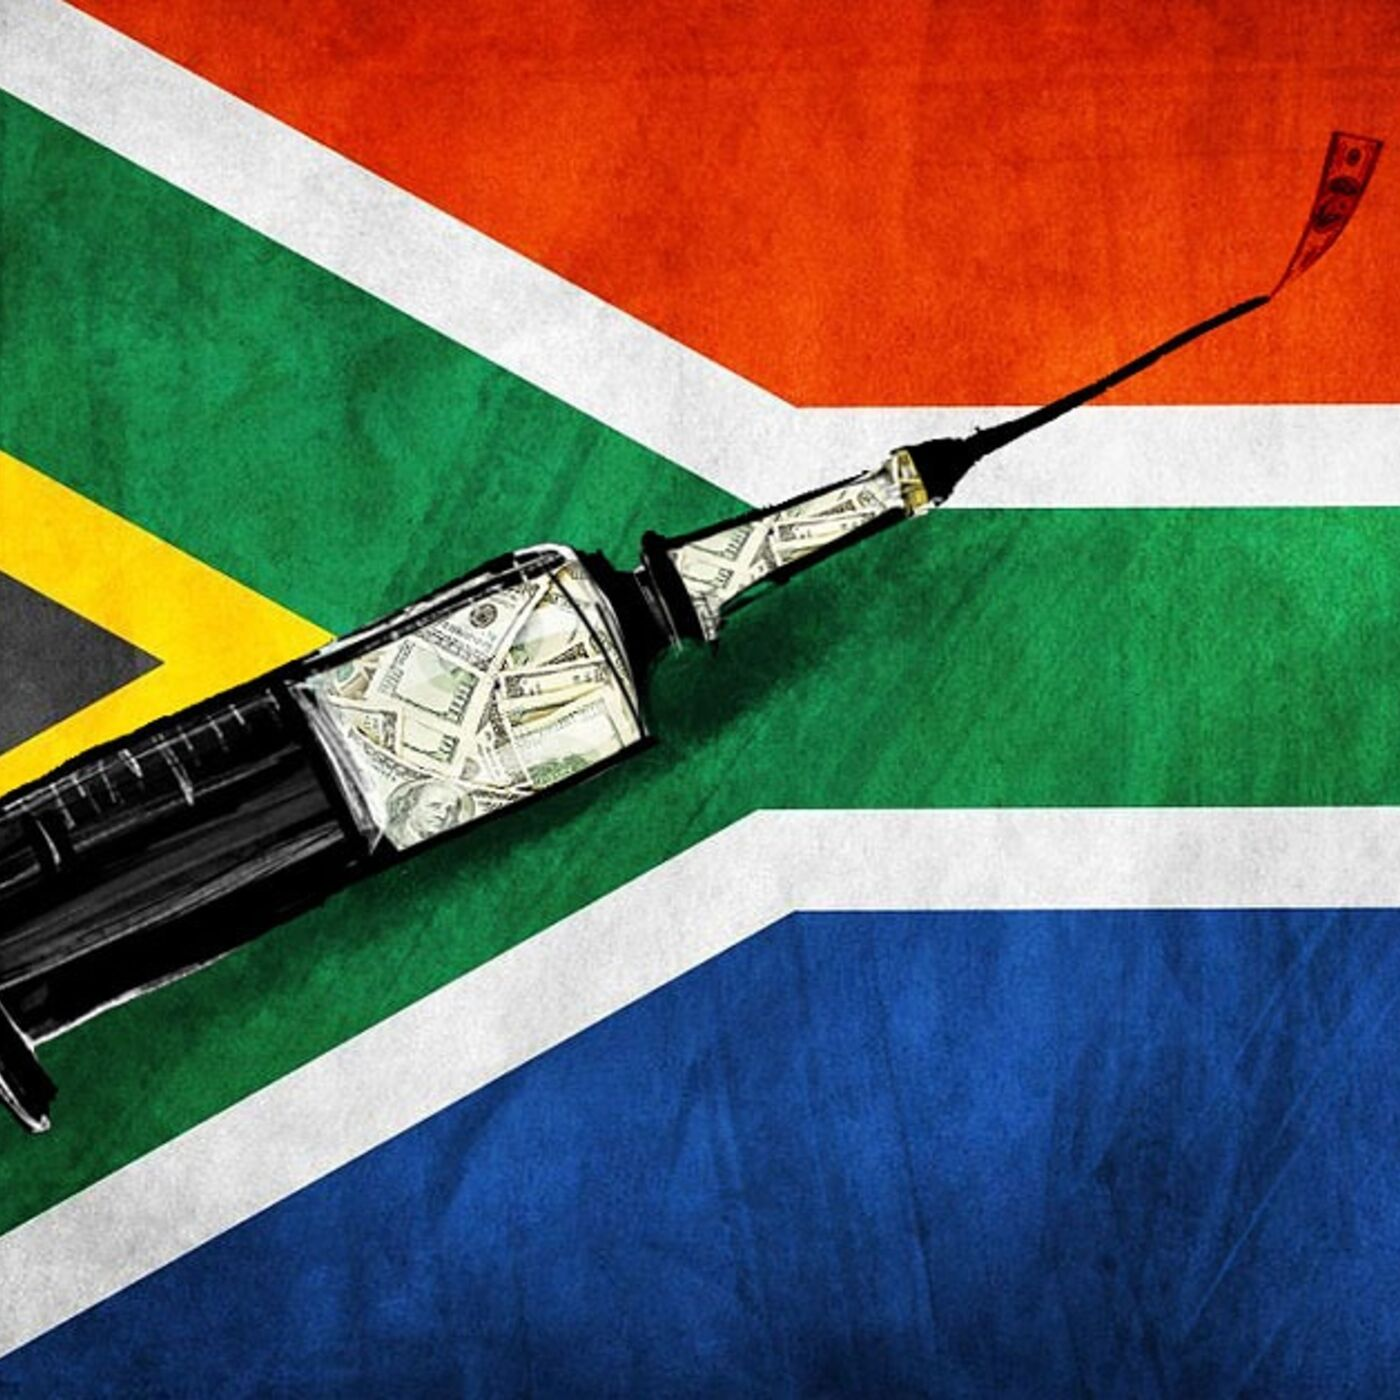 South Africa and the Vaccination Problems During the Covid-19 Pandemic